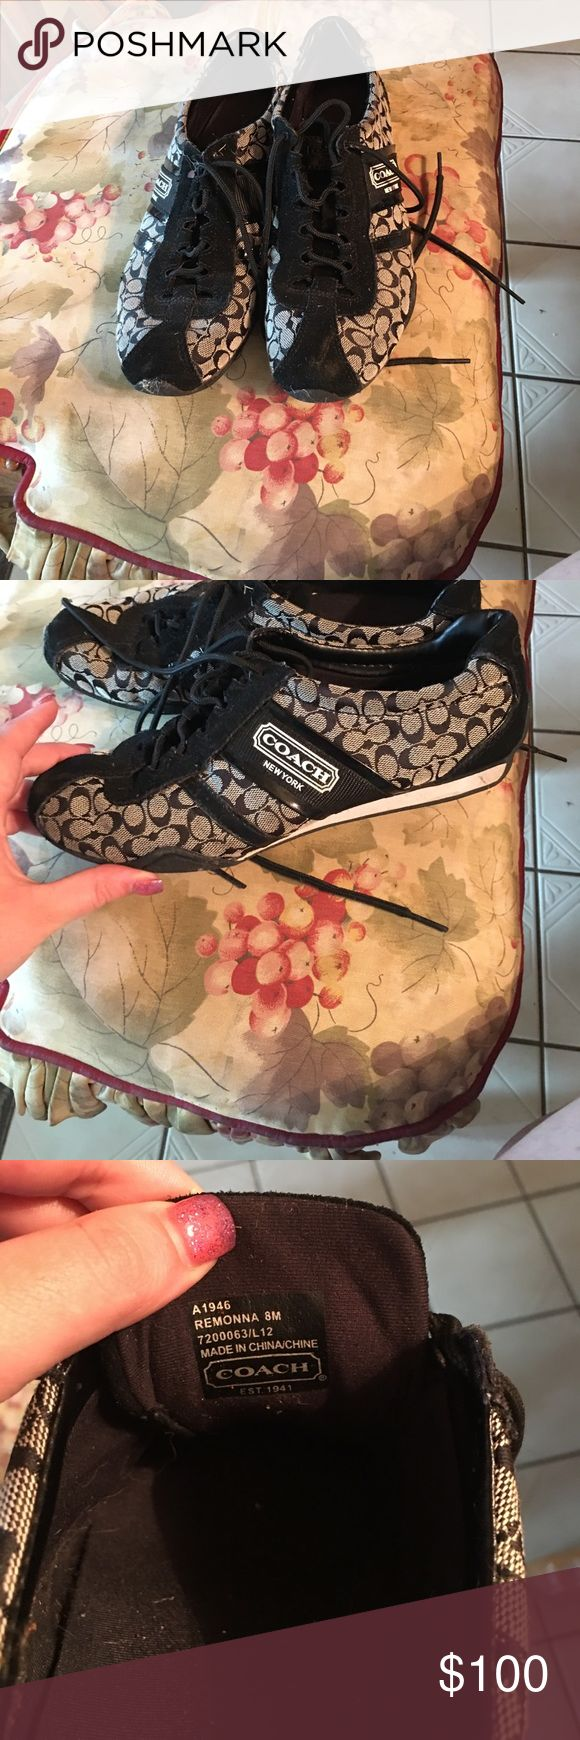 Coach Tennis Shoes Excellent condition. Worn once or twice. Don't fit anymore. Must get rid of Coach Shoes Sneakers